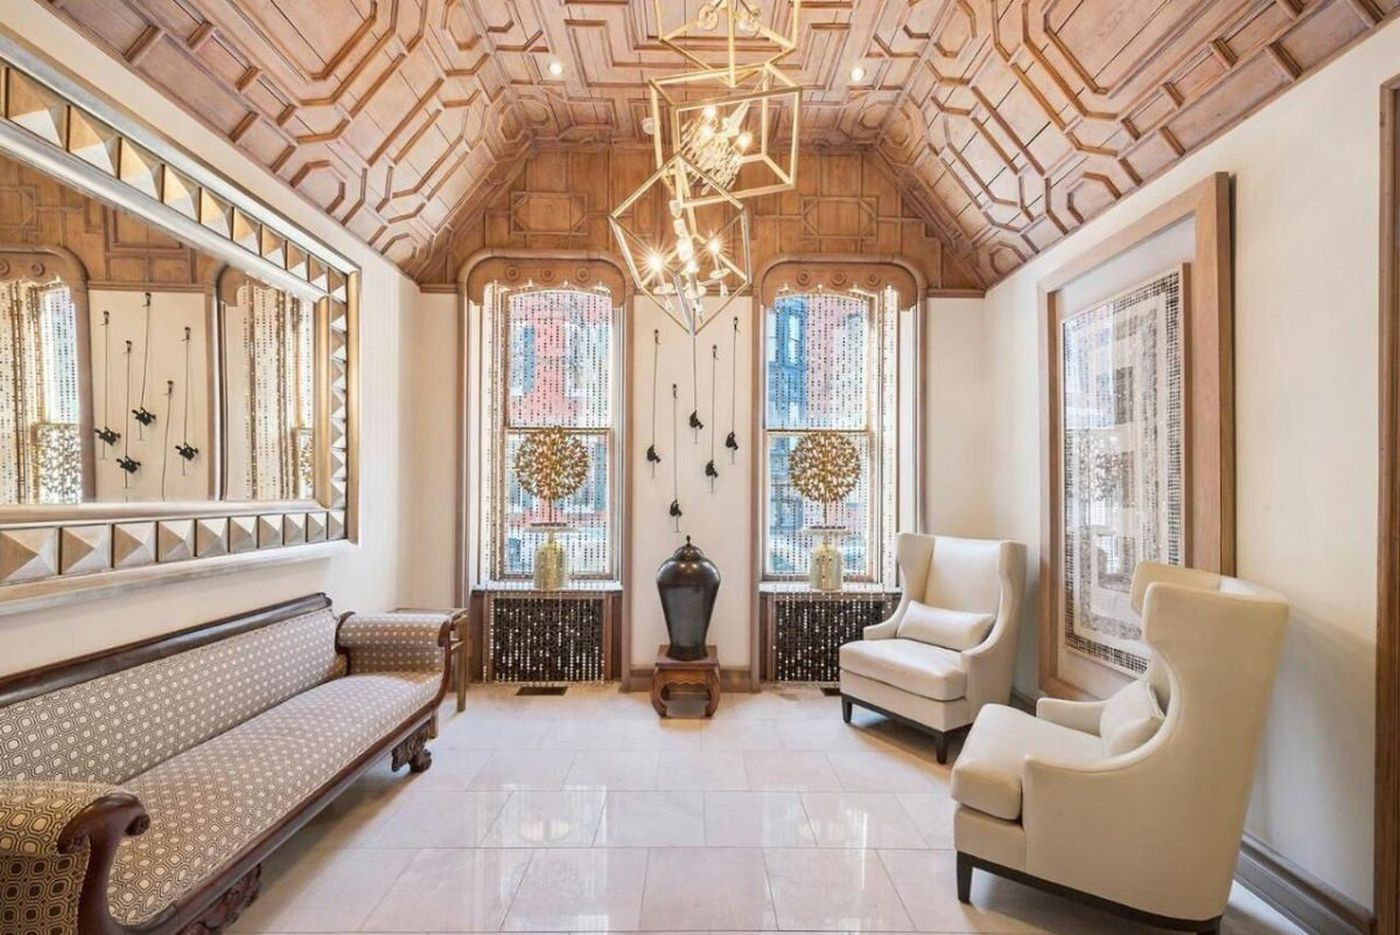 Multimillion-dollar homes in Philly with can't-be-missed ceilings